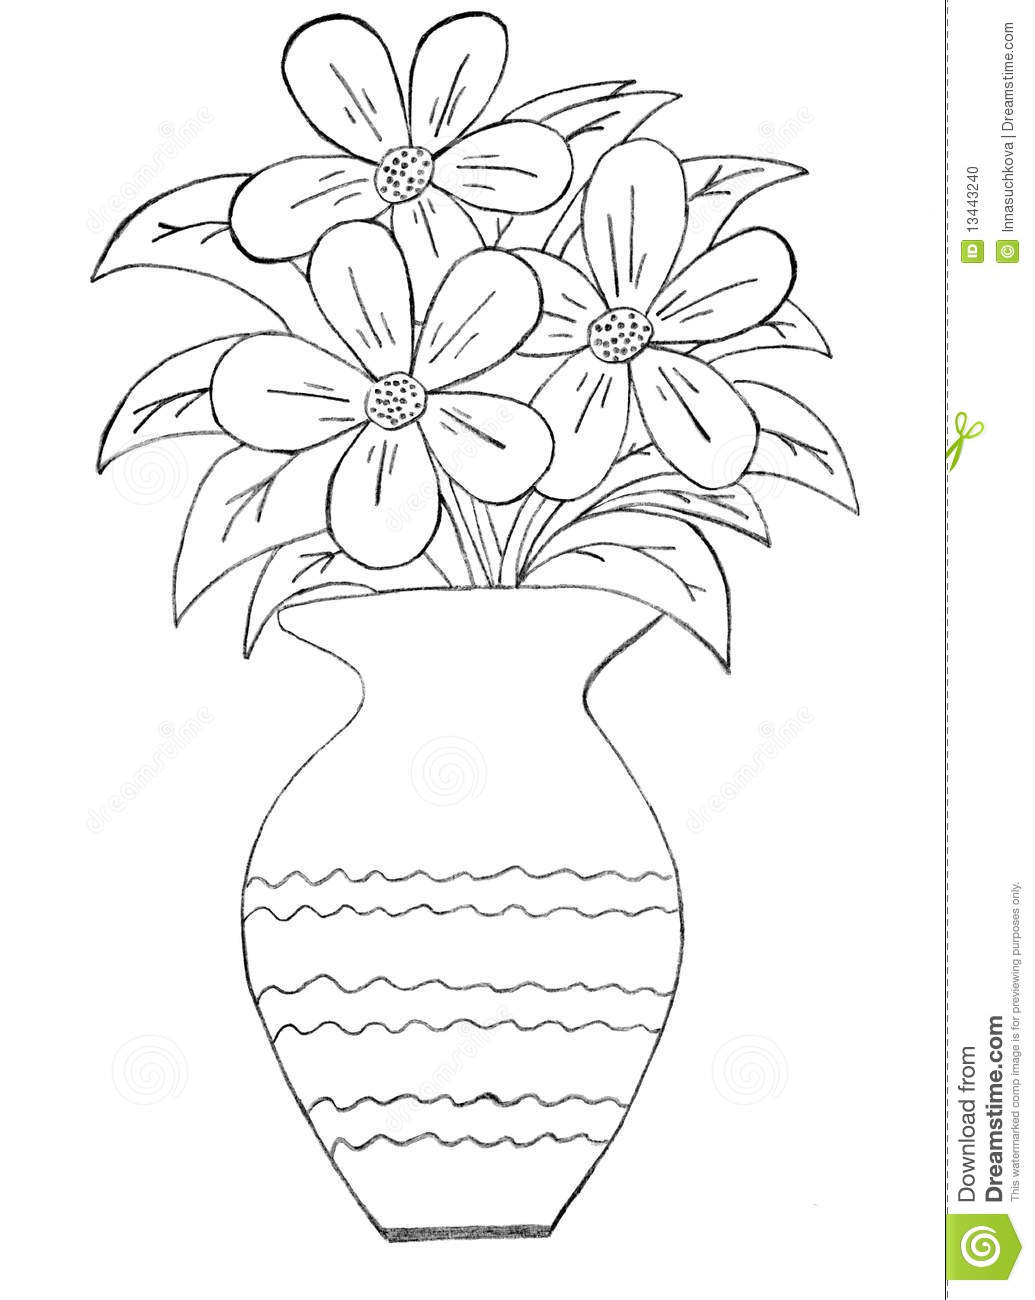 how to draw a vase with flowers step by step how to draw a bouquet of flowers step by step drawing flowers a by step draw step with how to vase